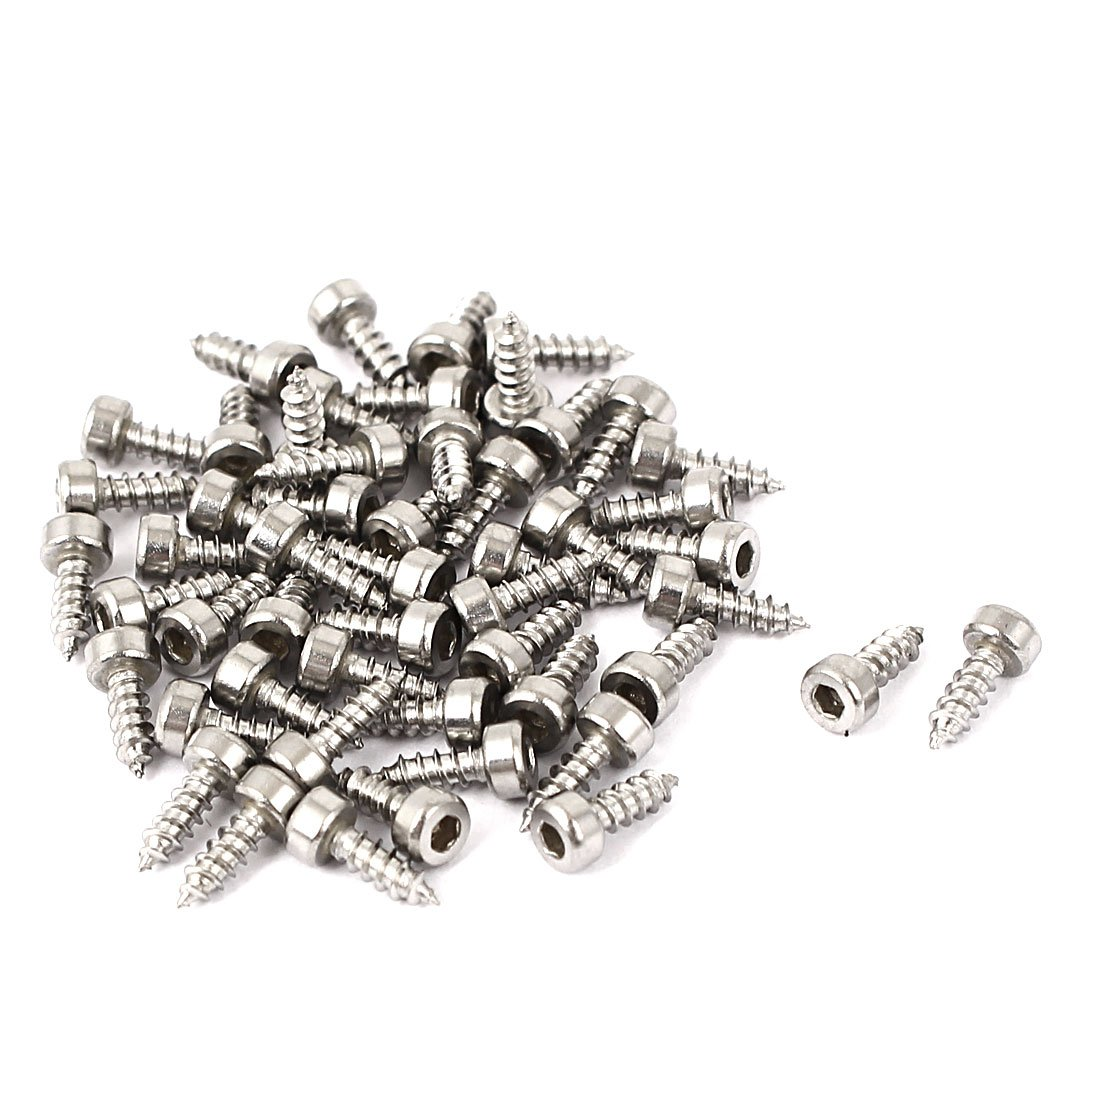 Uxcell a16032300ux0234 M2x6mm Hex Drive Head Cap Self Tapping Drilling Screws 50pcs Pack of 50